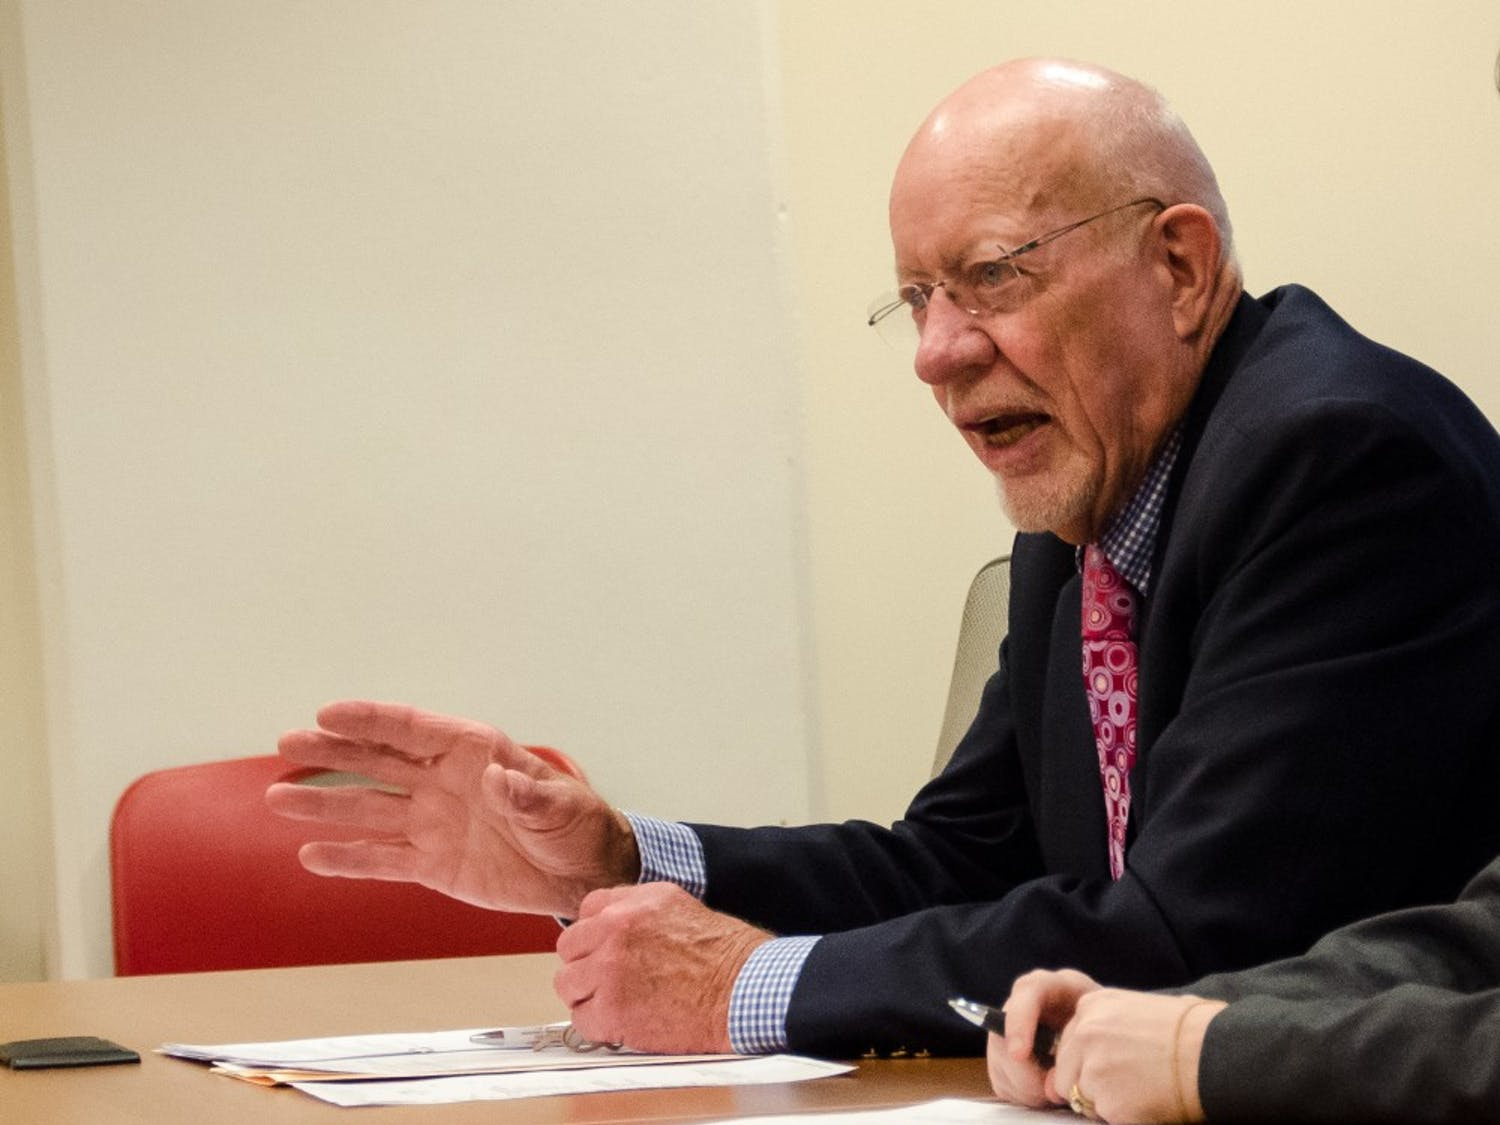 Sen. Fred Risser is once again trying to eliminate the state statute criminalizing abortion, which has been unenforceable since Roe v. Wade became federal law in 1973.